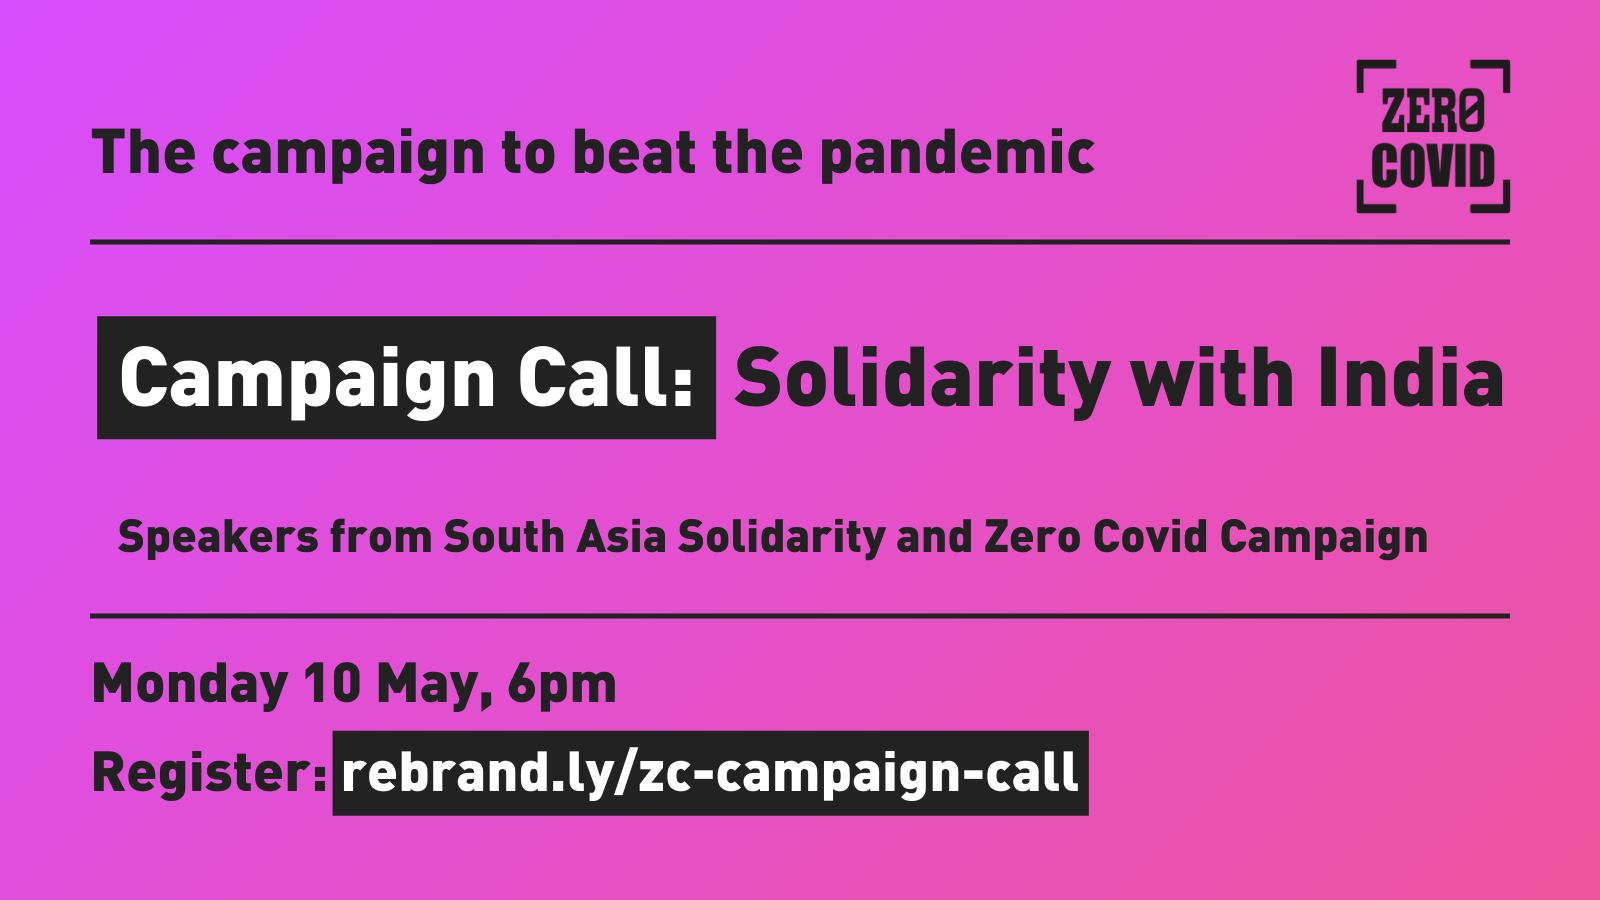 """An image publicising an event """"Campaign Call: Solidarity with India"""" on 10 May at 6pm"""